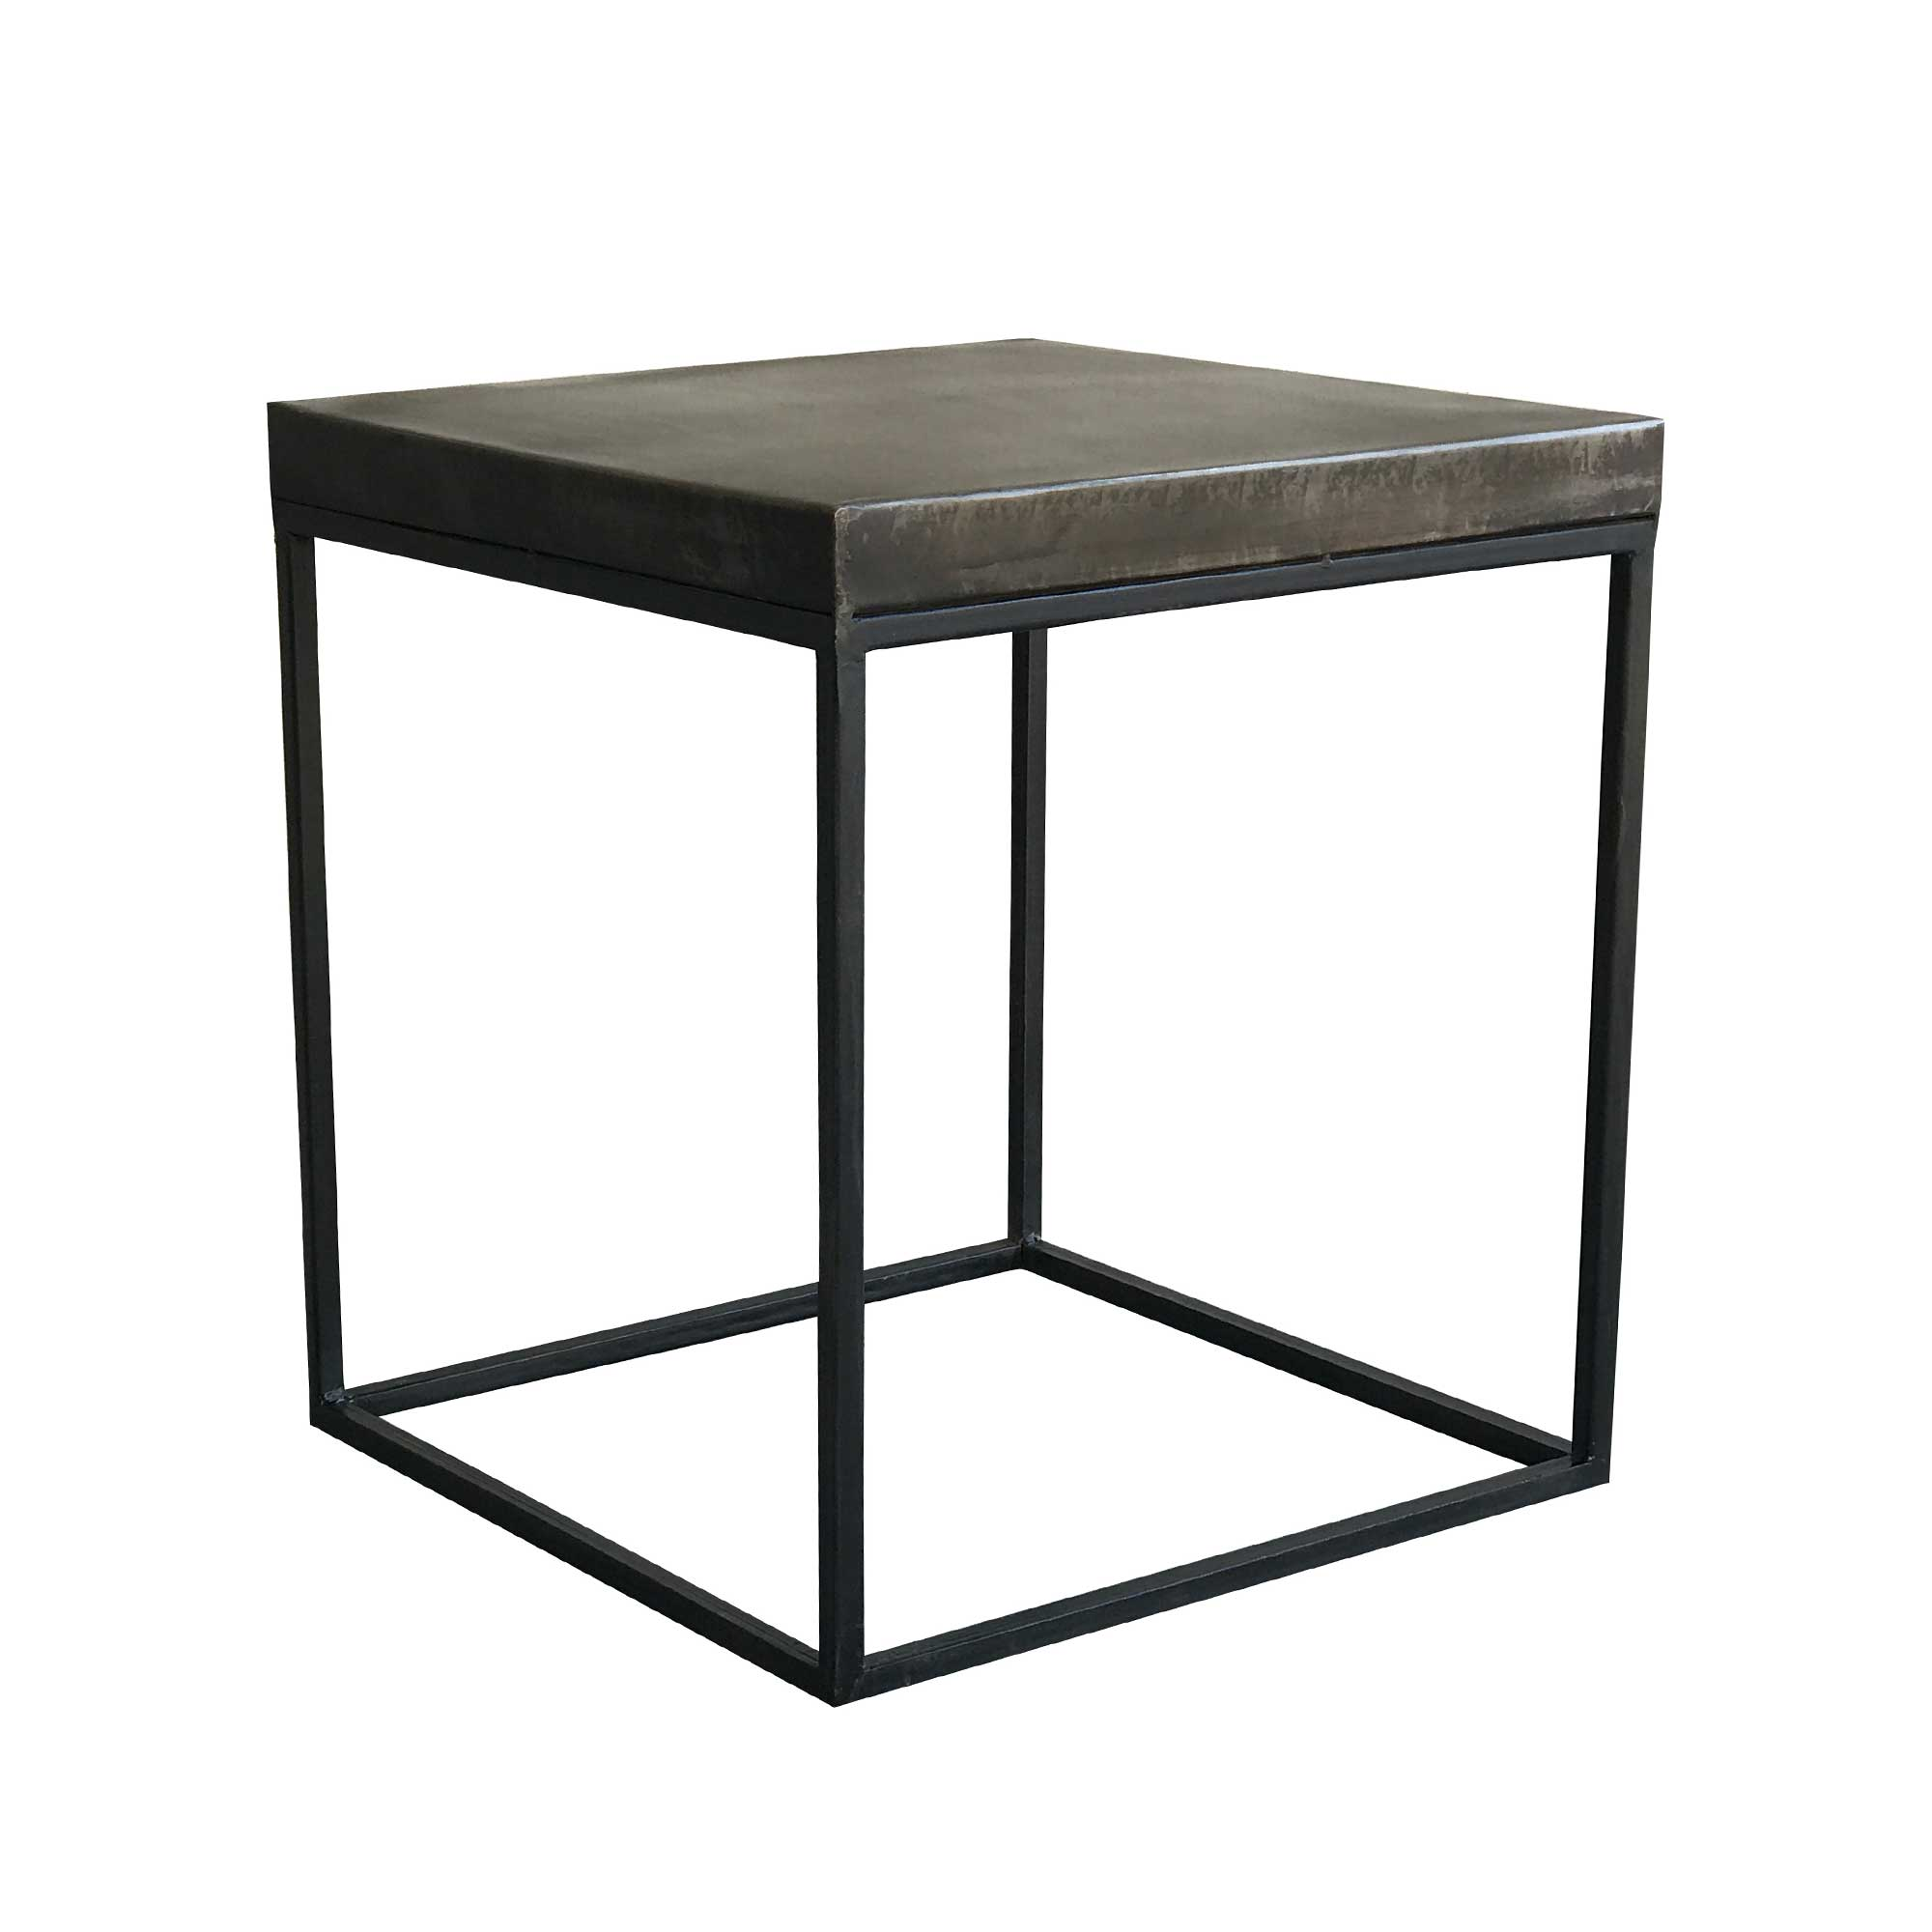 clipper industrial side table metal barker stonehouse zoom coffee tables and end black narrow bedside night stand versailles sofa furniture custom glass tops for contemporary base